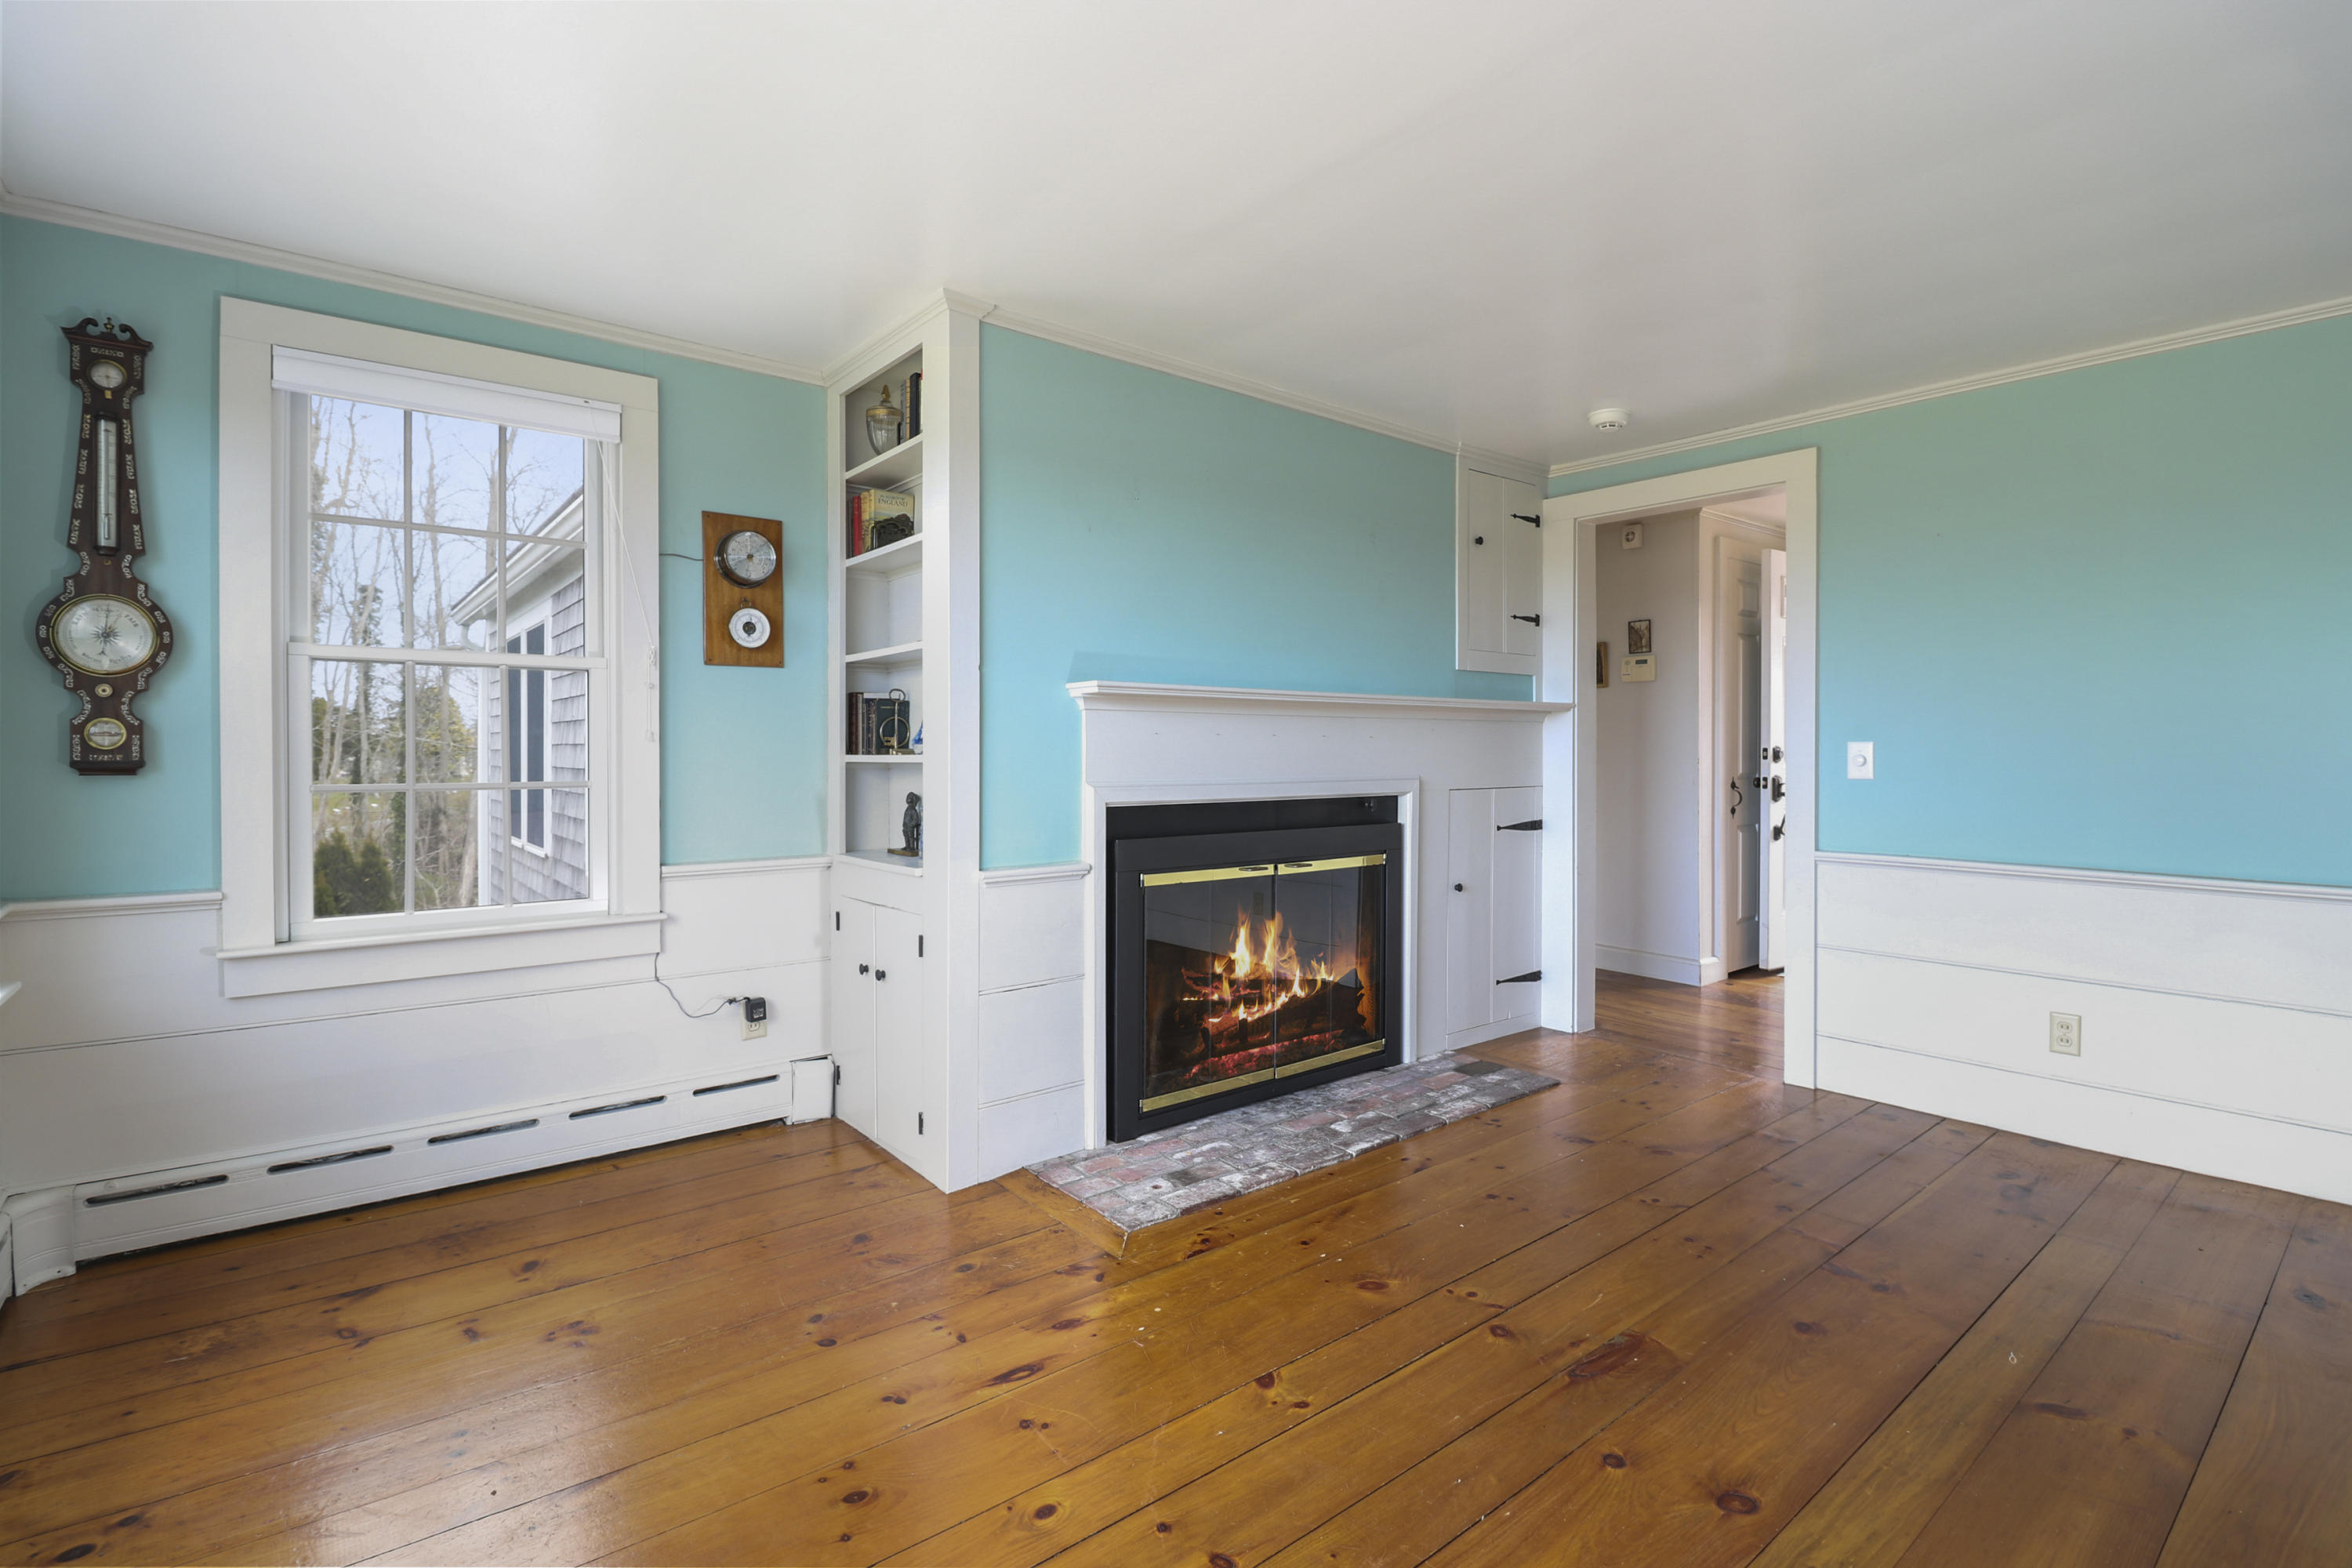 67 tonset road orleans ma 02653 property image 11